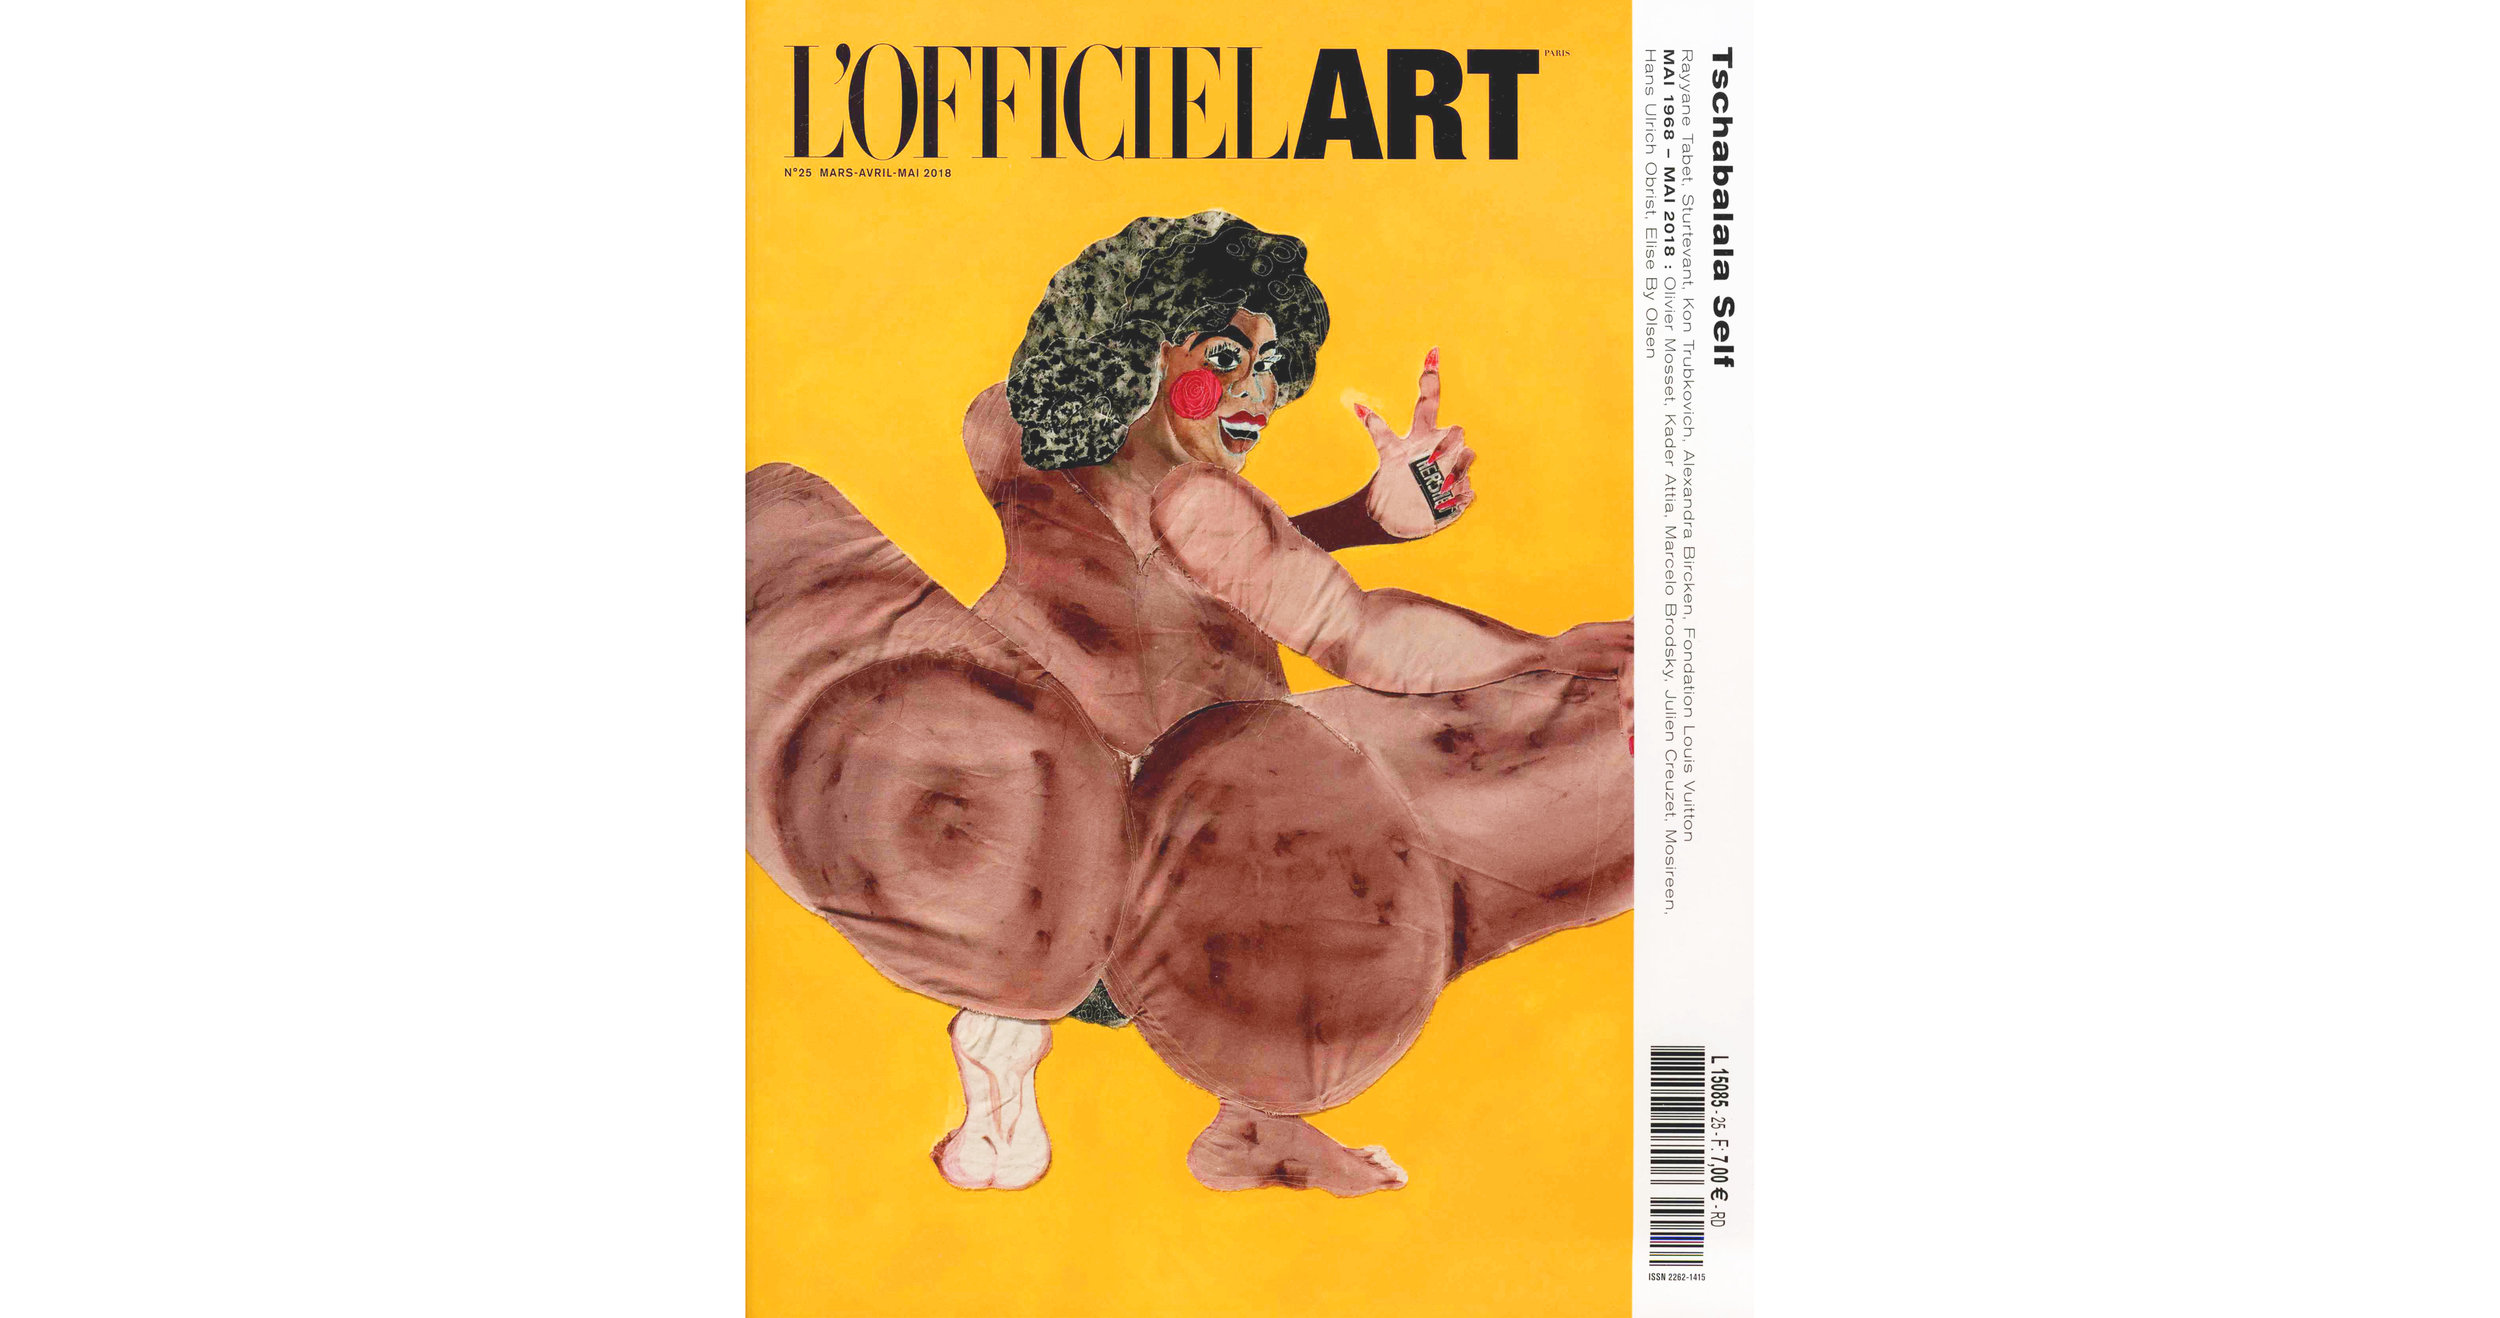 THE KID in OFFICIEL ART Magazine - March April May 2018 Print Issue - France - Page 36 - Cover page - Web 150dpi - Web wb.jpg